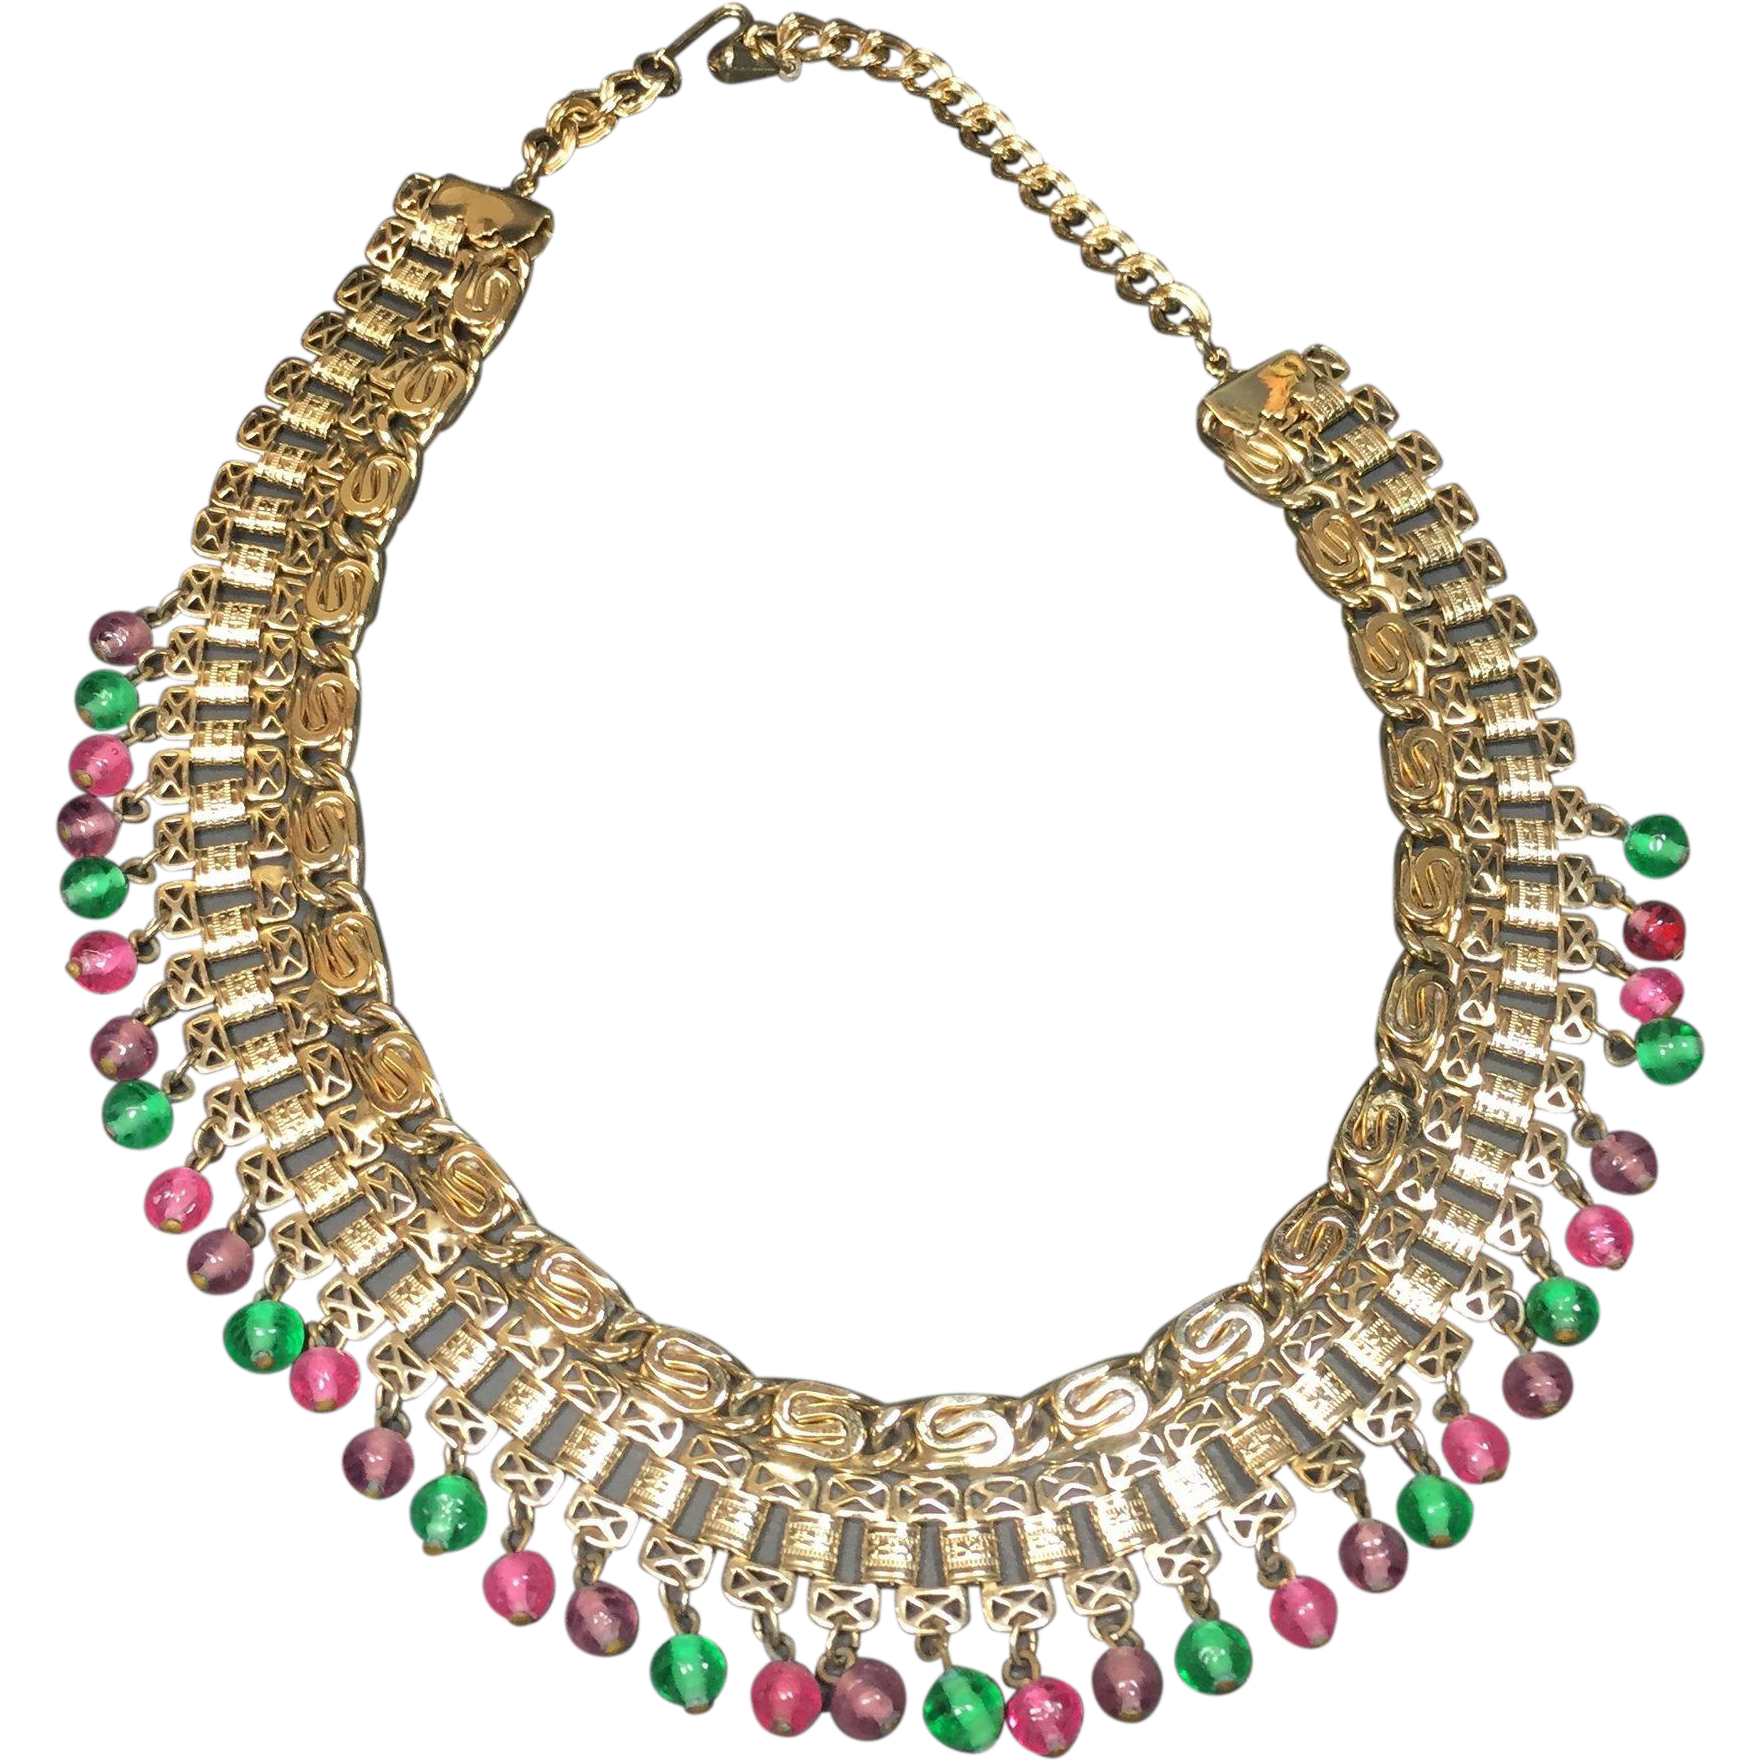 Vintage Collar Necklace Egyptian Revival Style